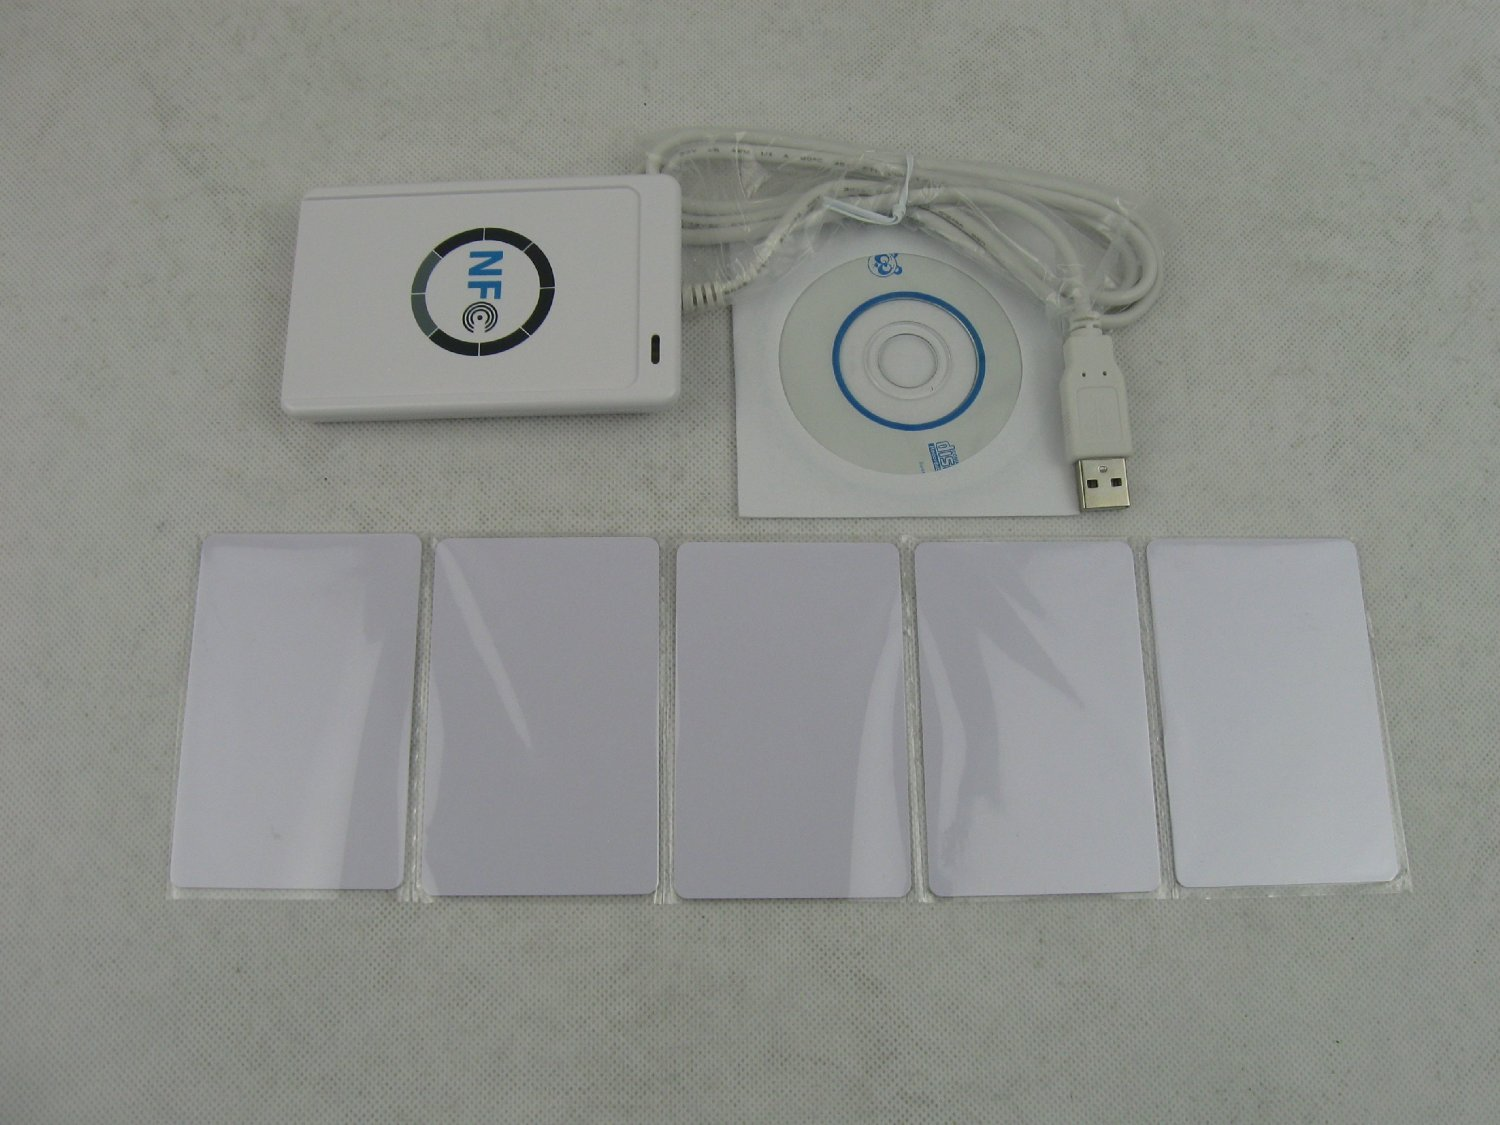 Yosoo ACR122U NFC RFID Contactless Smart Reader & Writer/USB + 5X Mifare IC Card by Yosoo